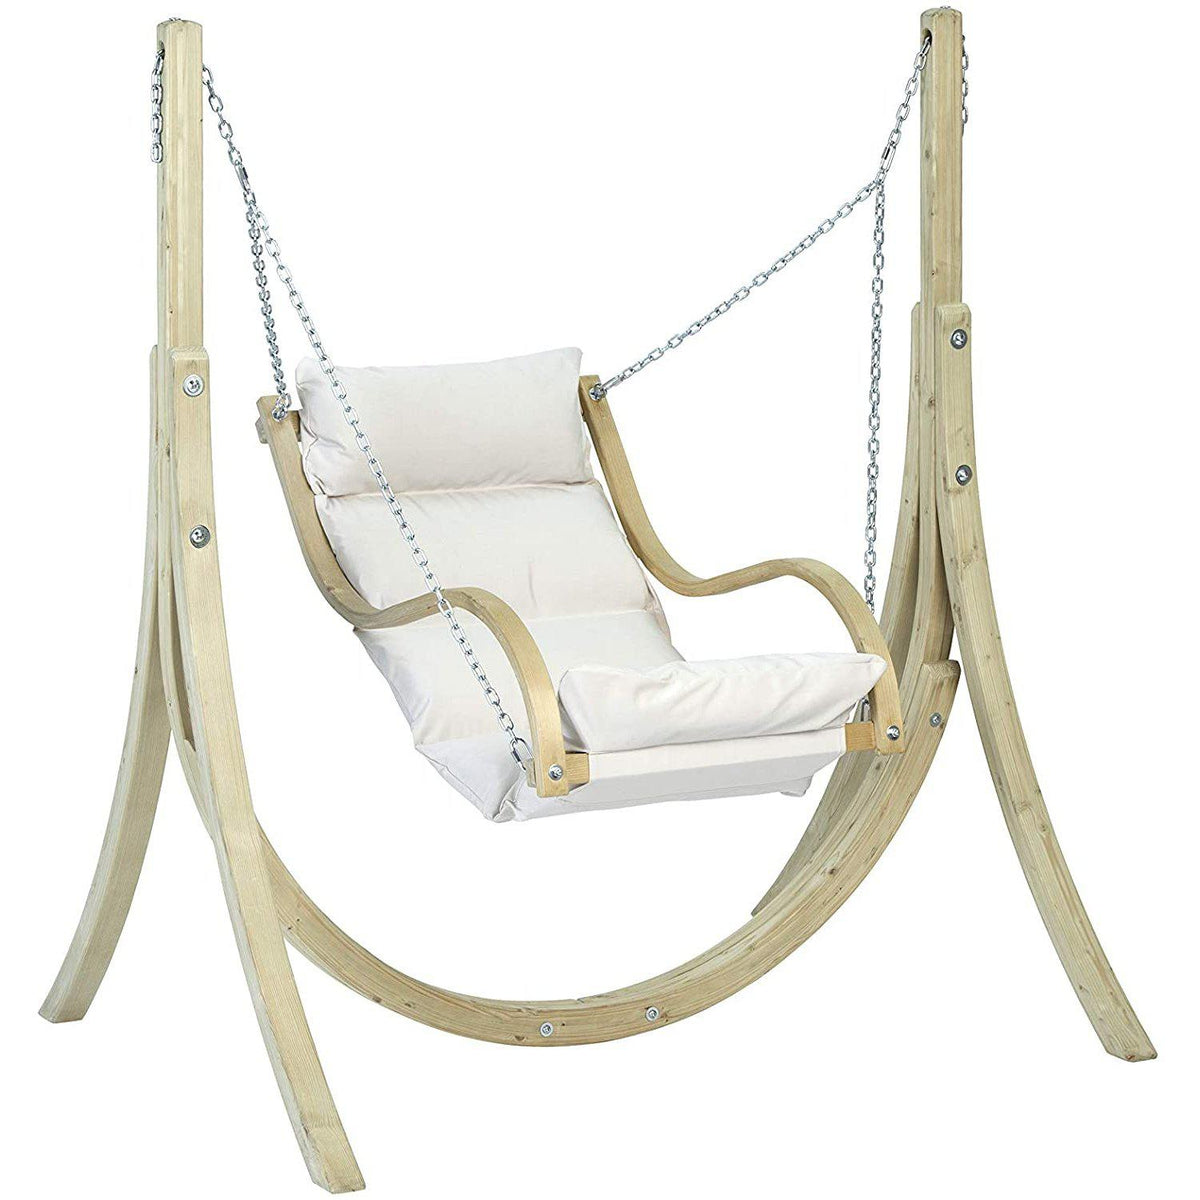 Globo Fat Chair and Stand, Natural, from Byer of Maine